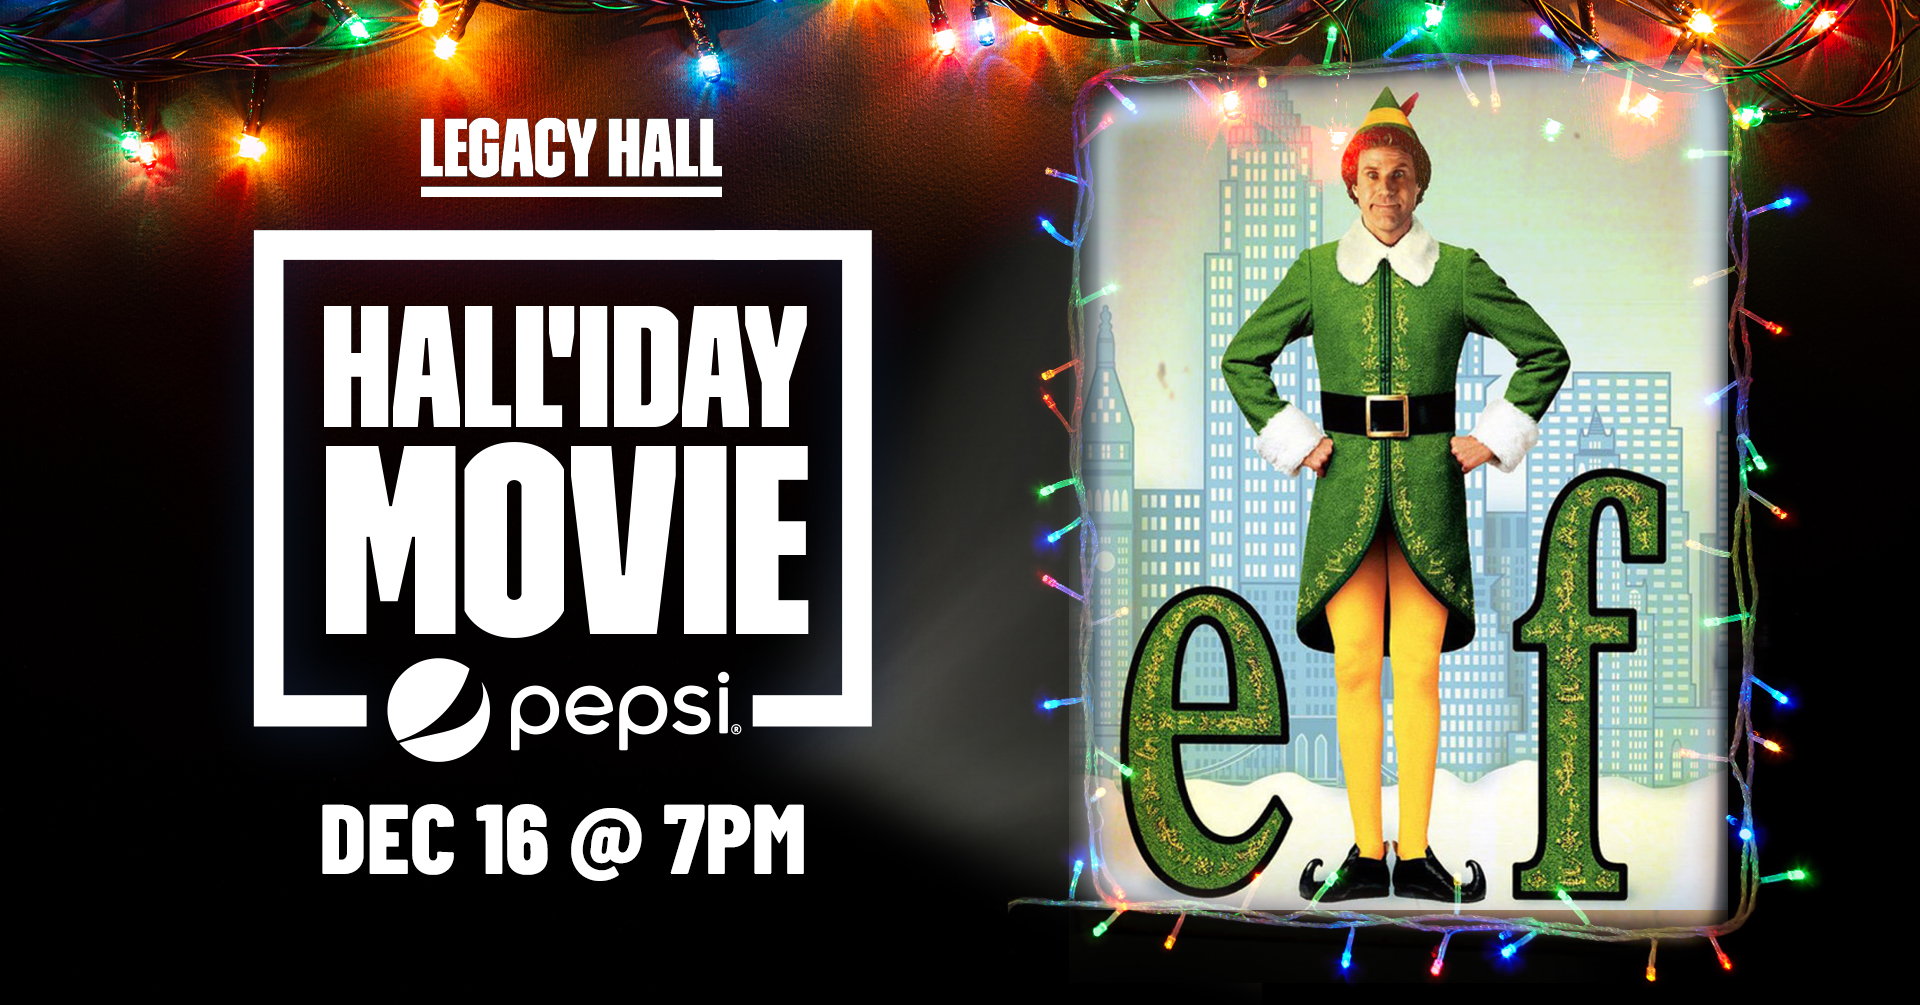 Promo image of Elf Hall'iday Movie Night